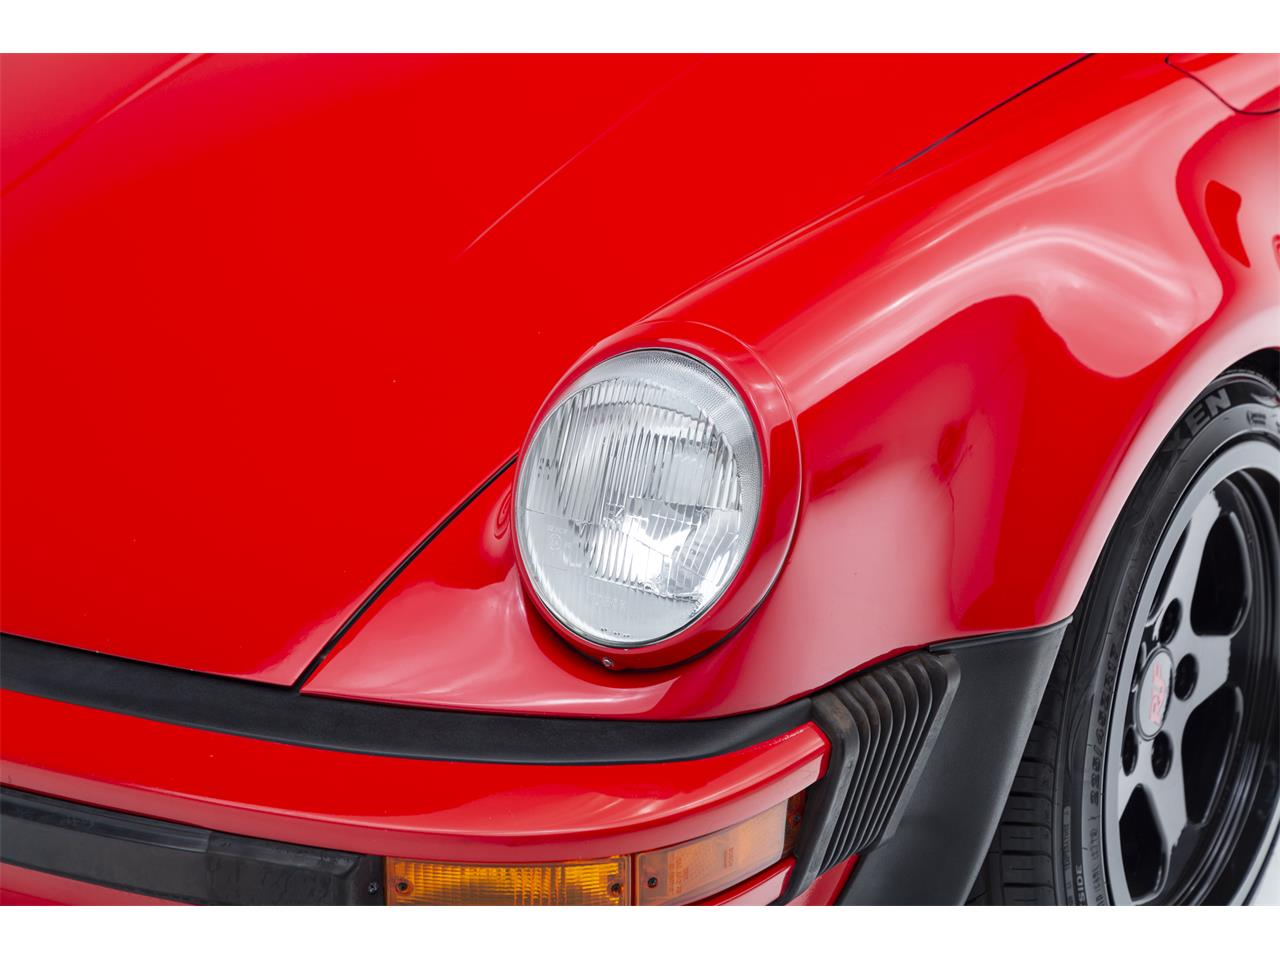 Large Picture of '79 Porsche 911 Carrera located in Boise Idaho - $44,995.00 Offered by a Private Seller - QIAZ